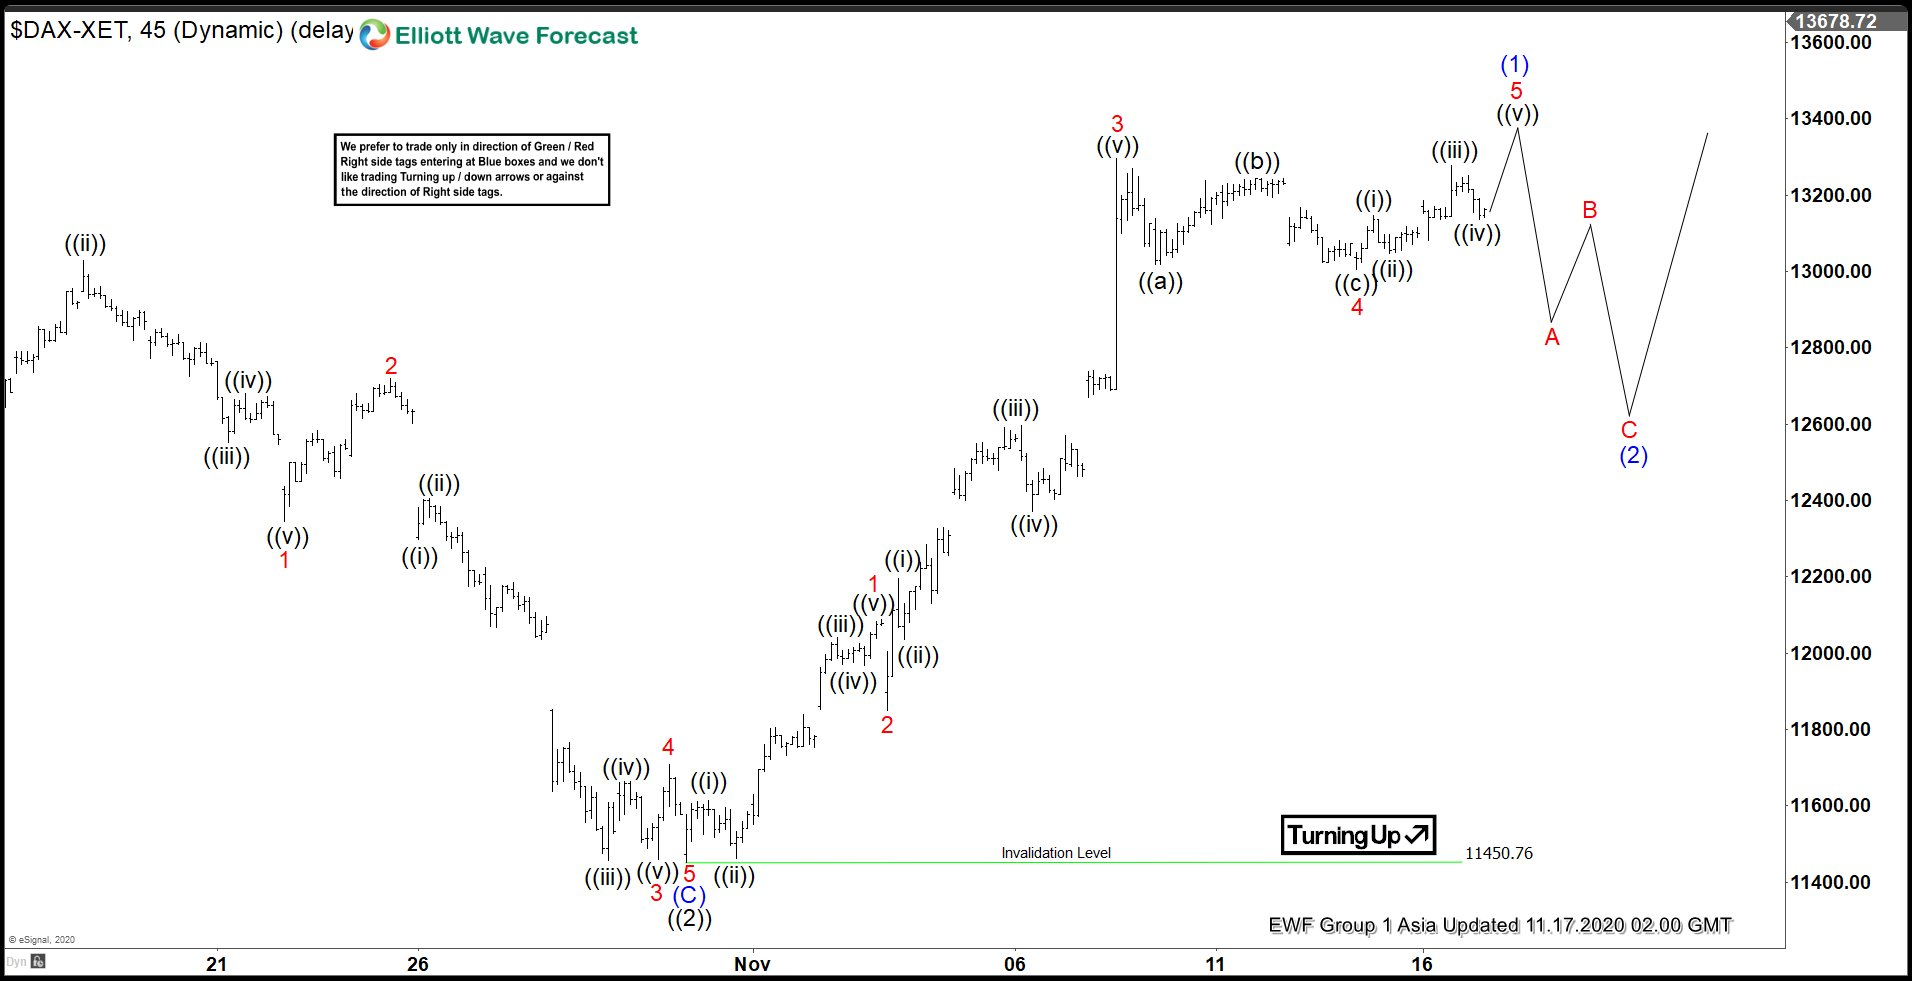 Elliott Wave View: DAX Impulsive Rally Suggests Buyers in Control